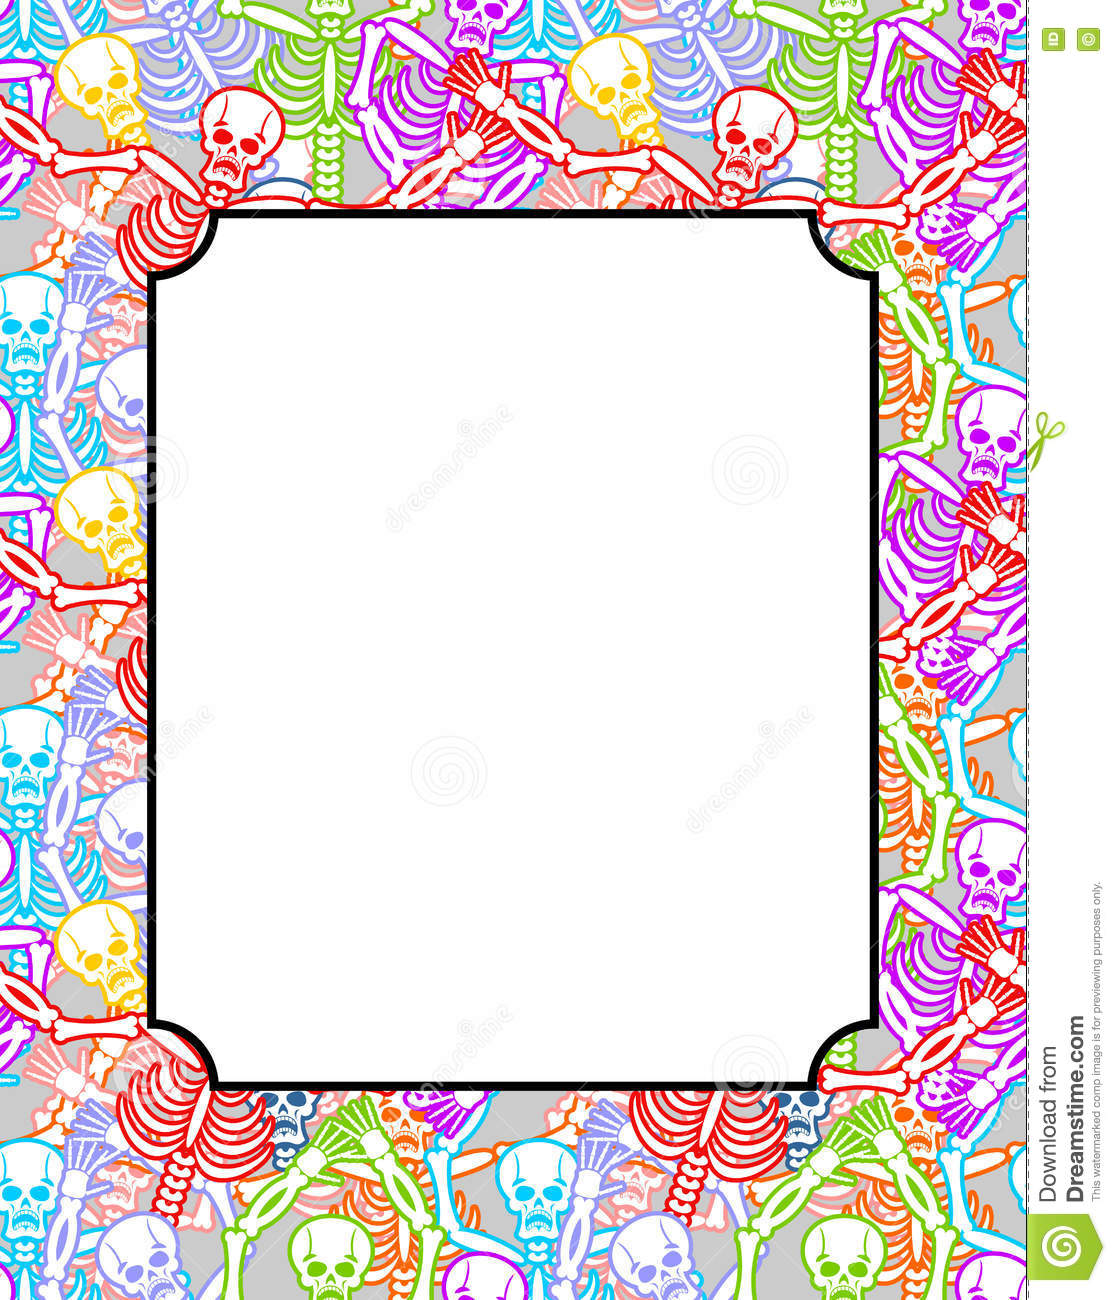 Frame For Day Of The Dead Multicolored Skeletons Color Skull